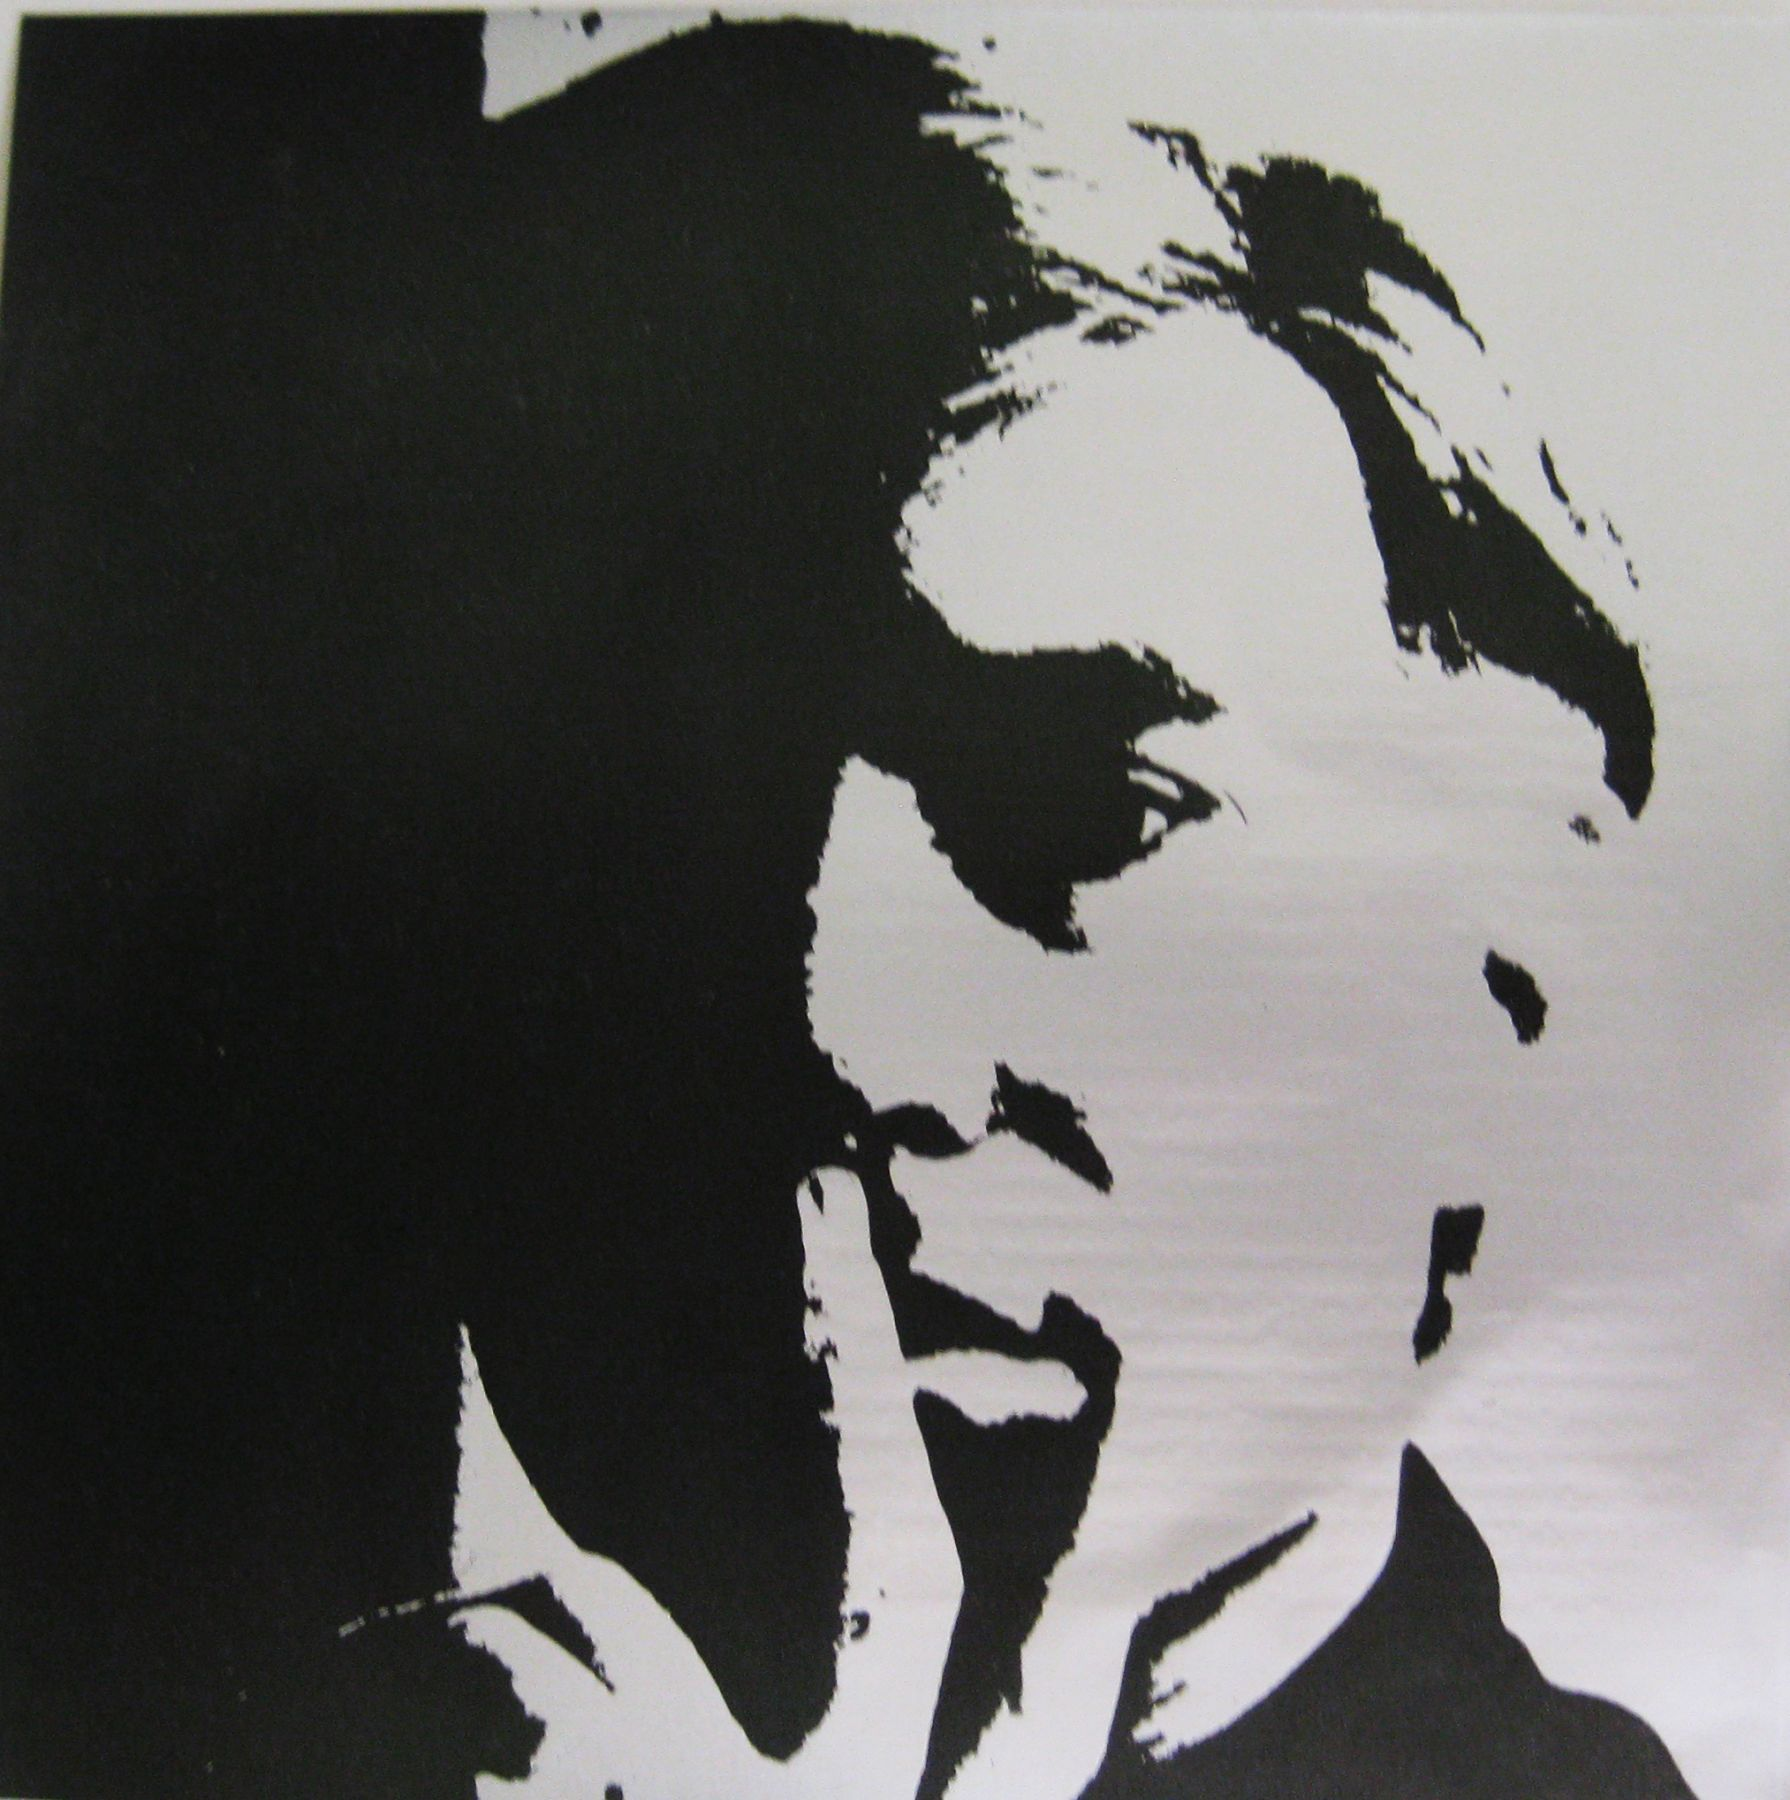 """ANDY WARHOL. """"Self-Portrait (Galerie Delta). 1967. Image courtesy of Alden Projects™, New York."""